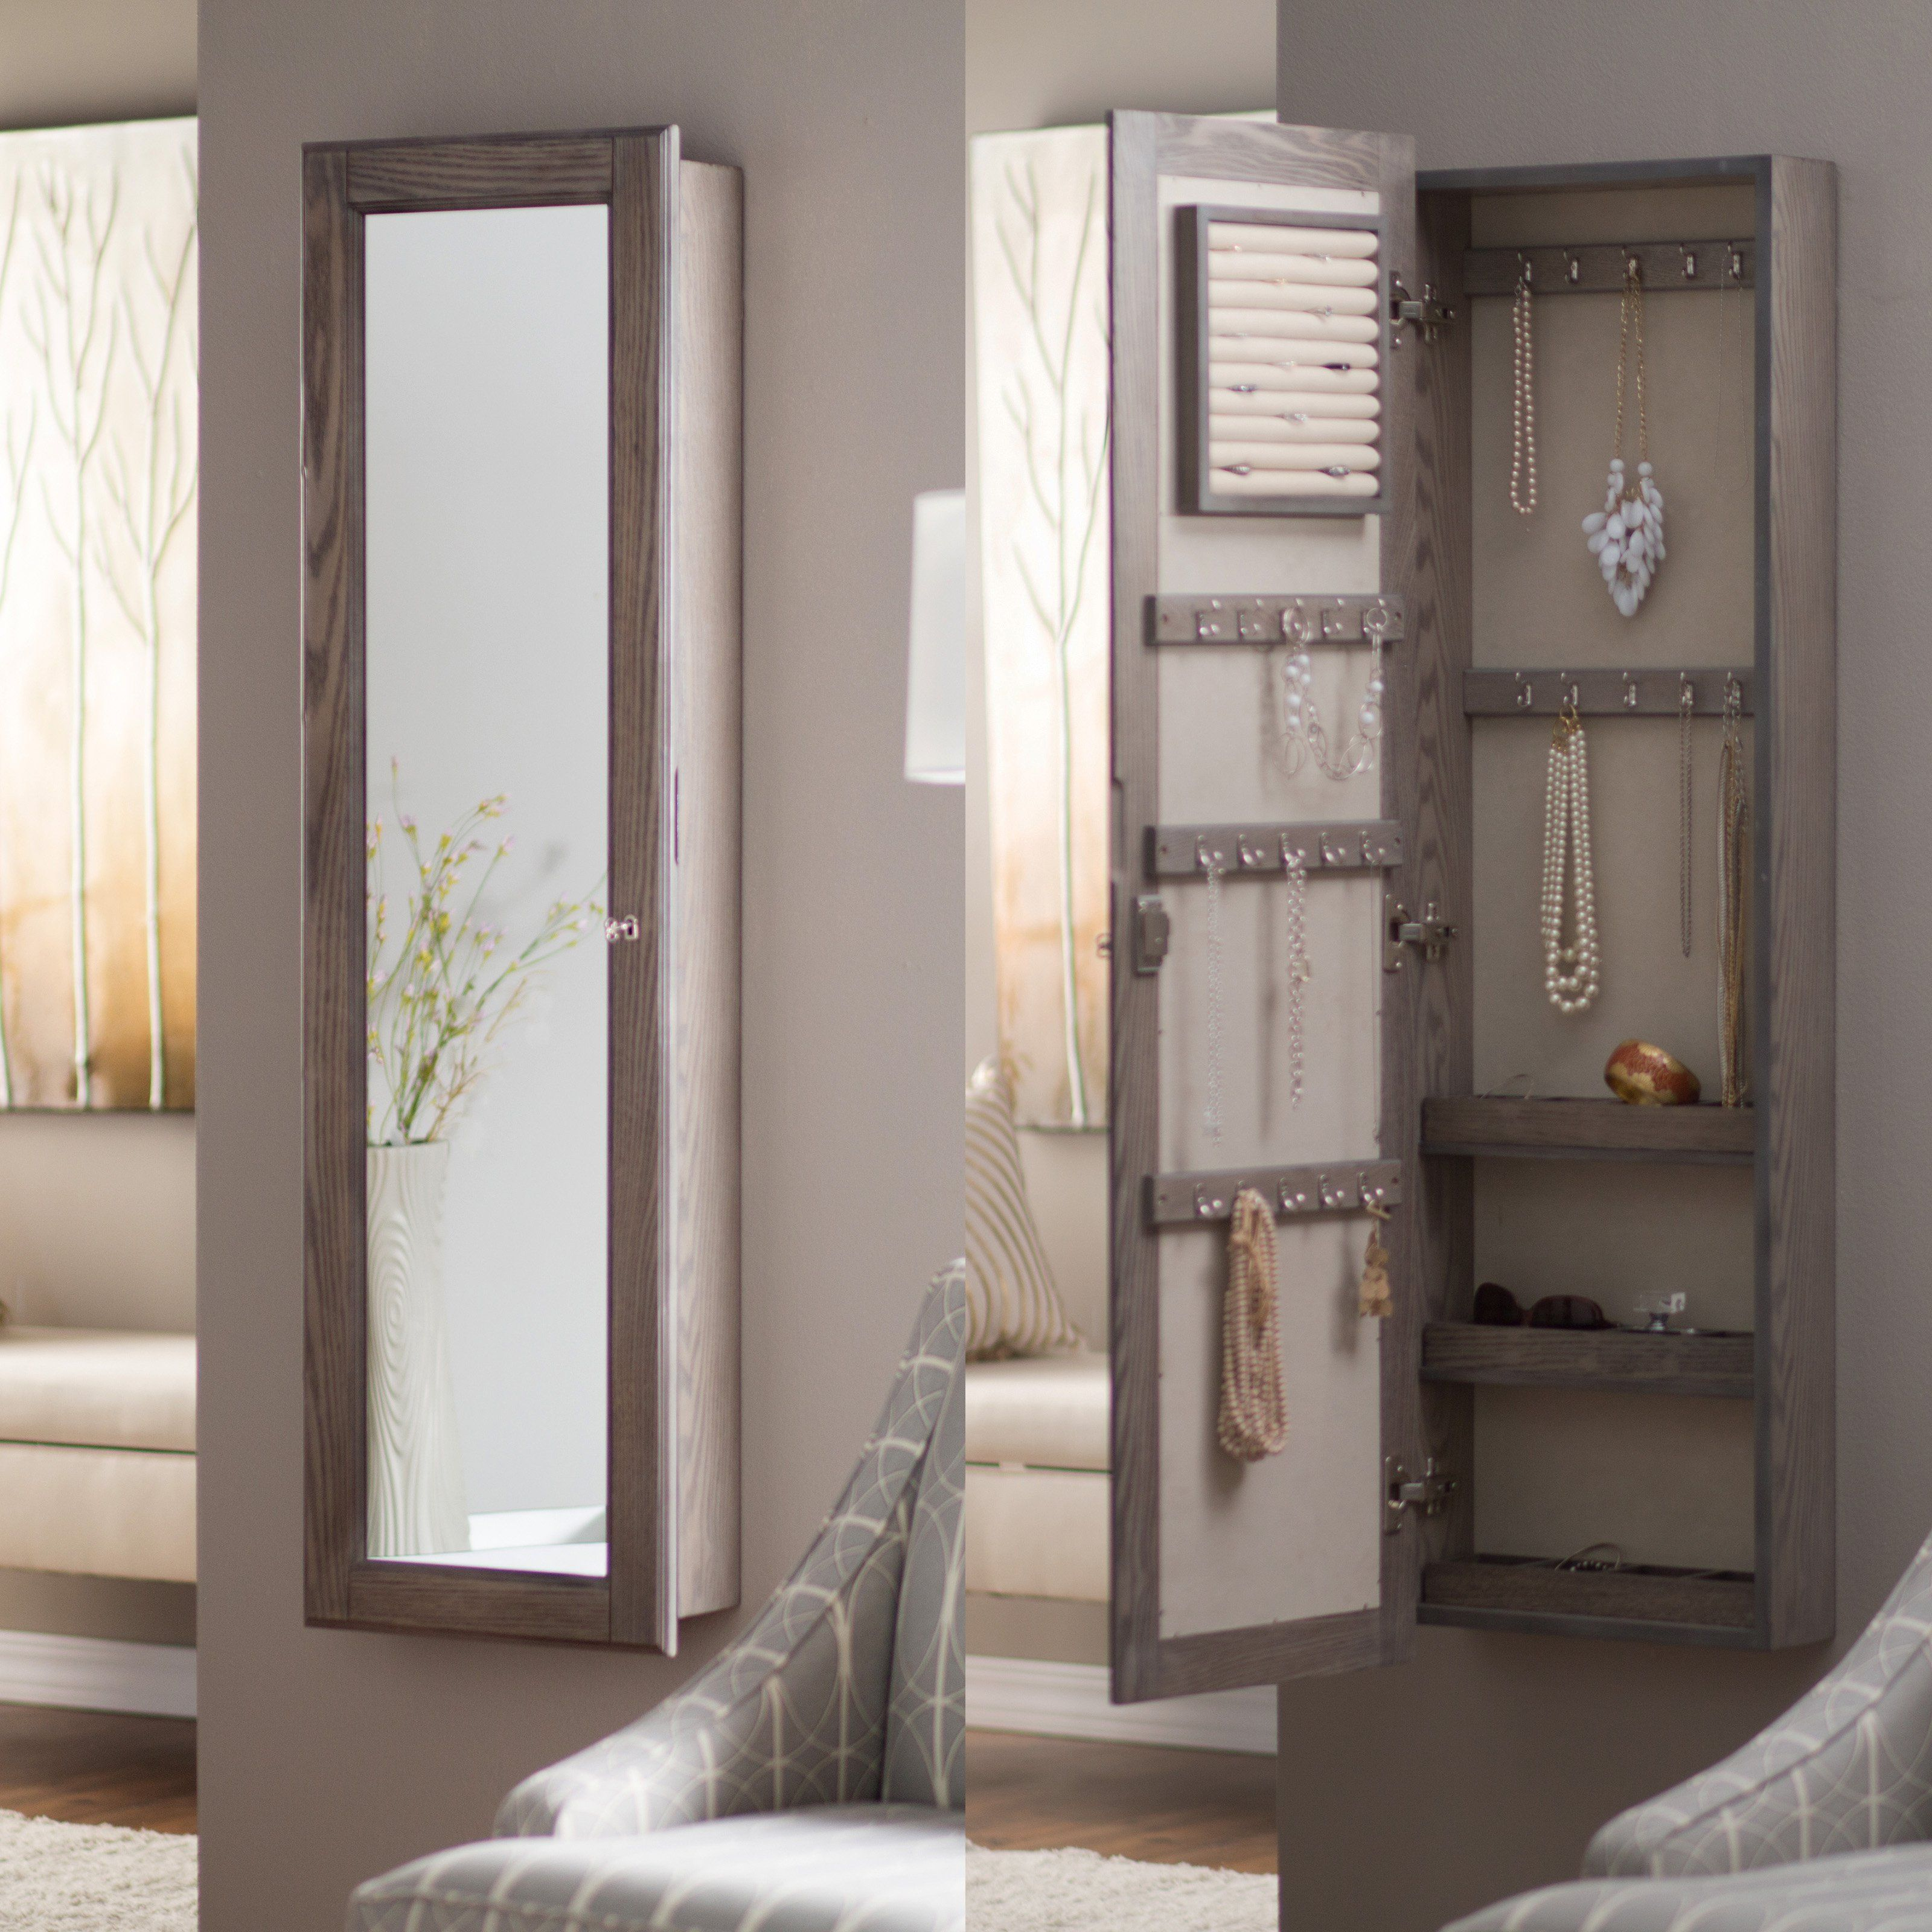 Wall Mounted Locking Mirrored Jewelry Armoire Driftwood Mirror